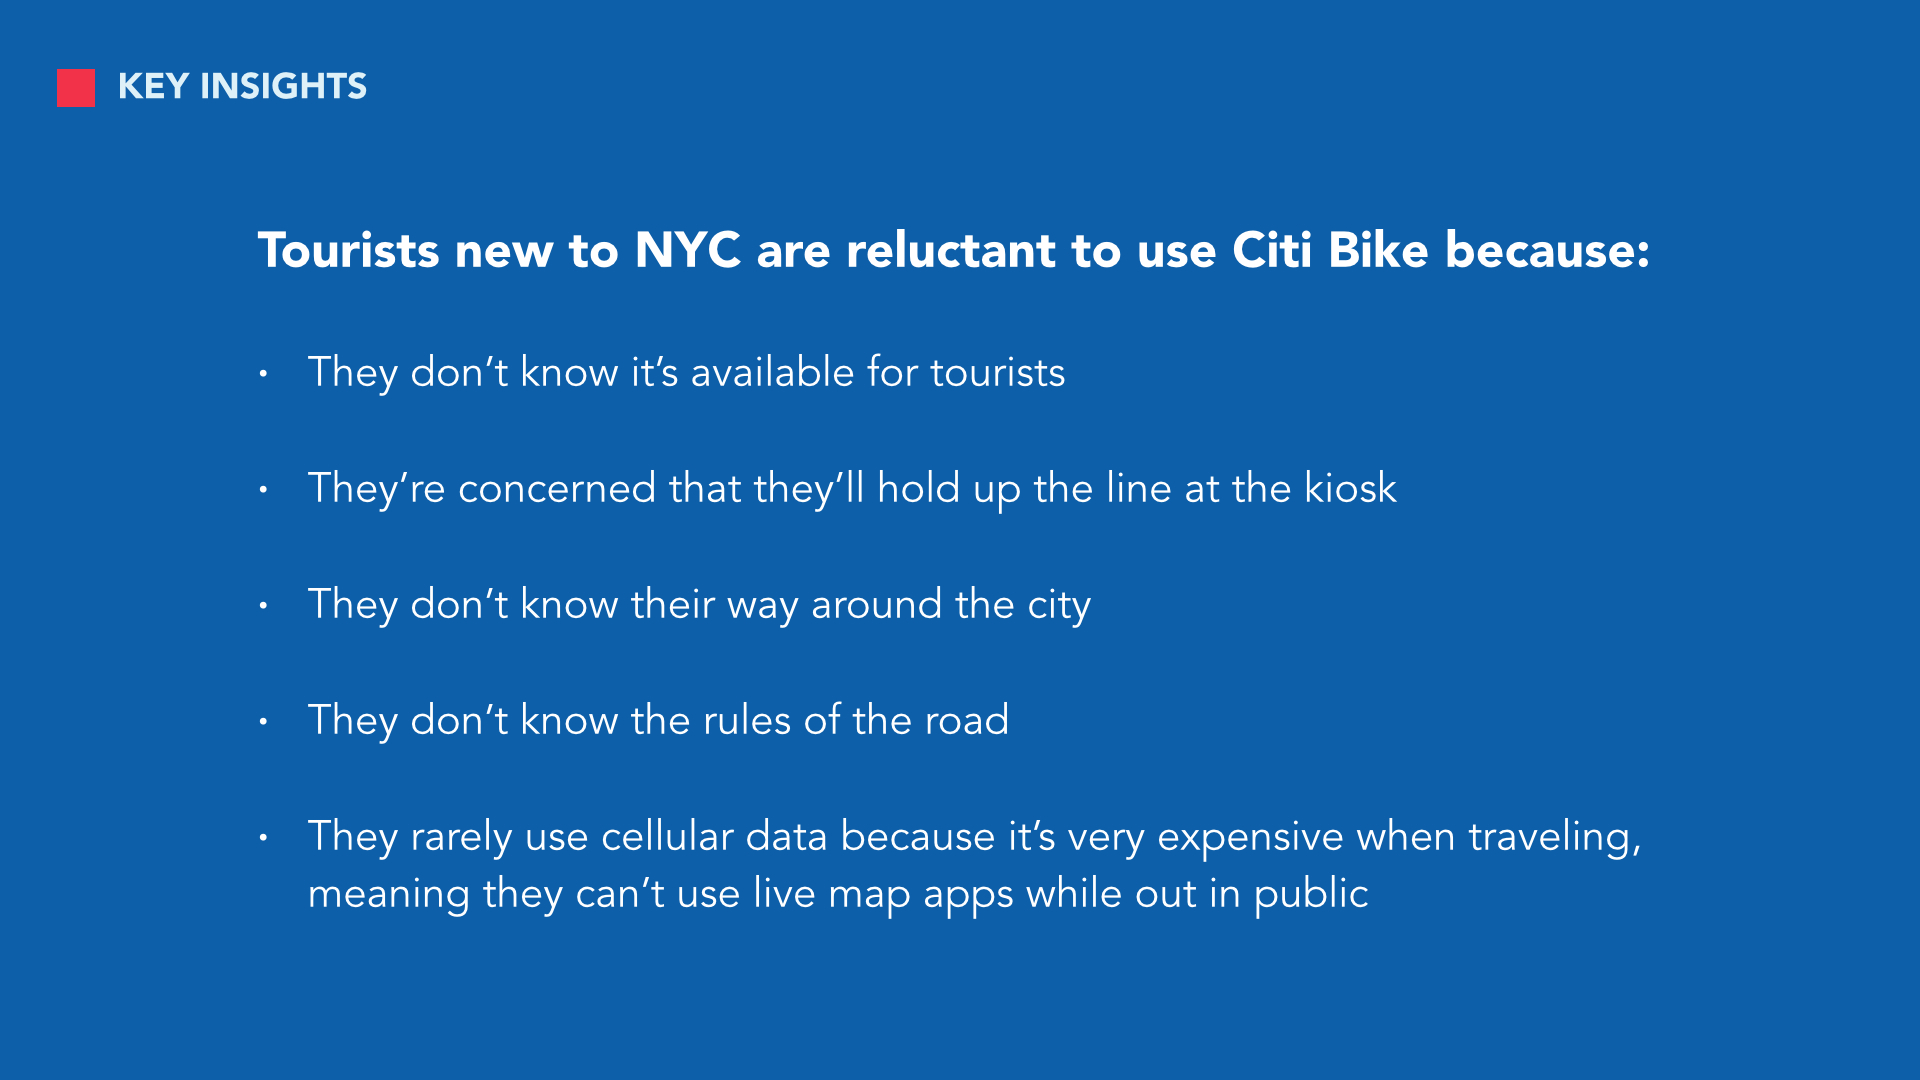 Some important insights we gathered from our interviews with tourists. Most of them revolved around the fact that they were unfamiliar with the city and therefore, uncomfortable with using a local service that would largely require self-navigation and self-service.